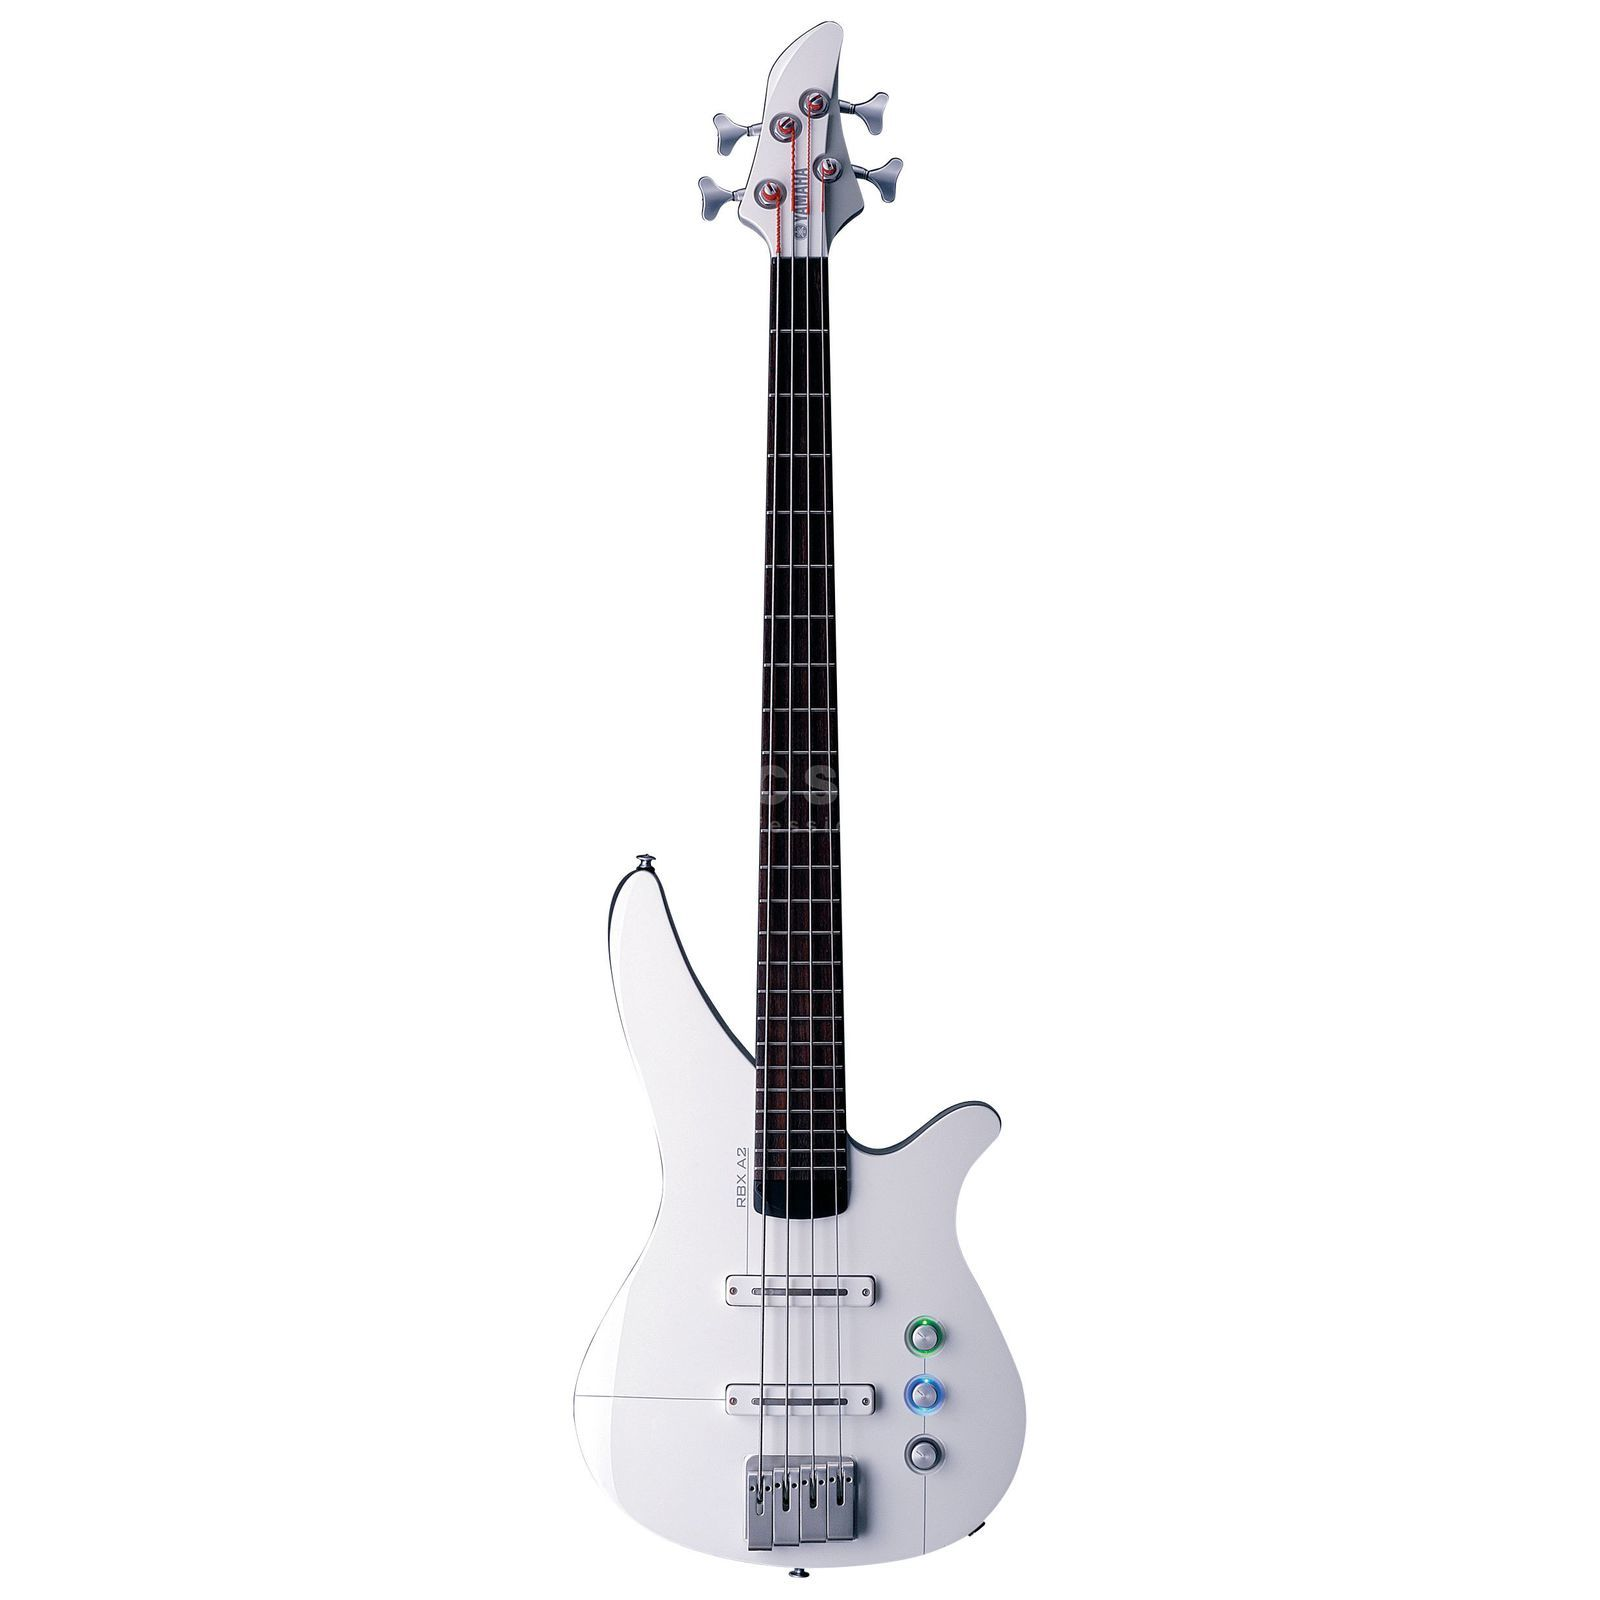 Yamaha RBX4 A2 Bass Guitar, White    Product Image